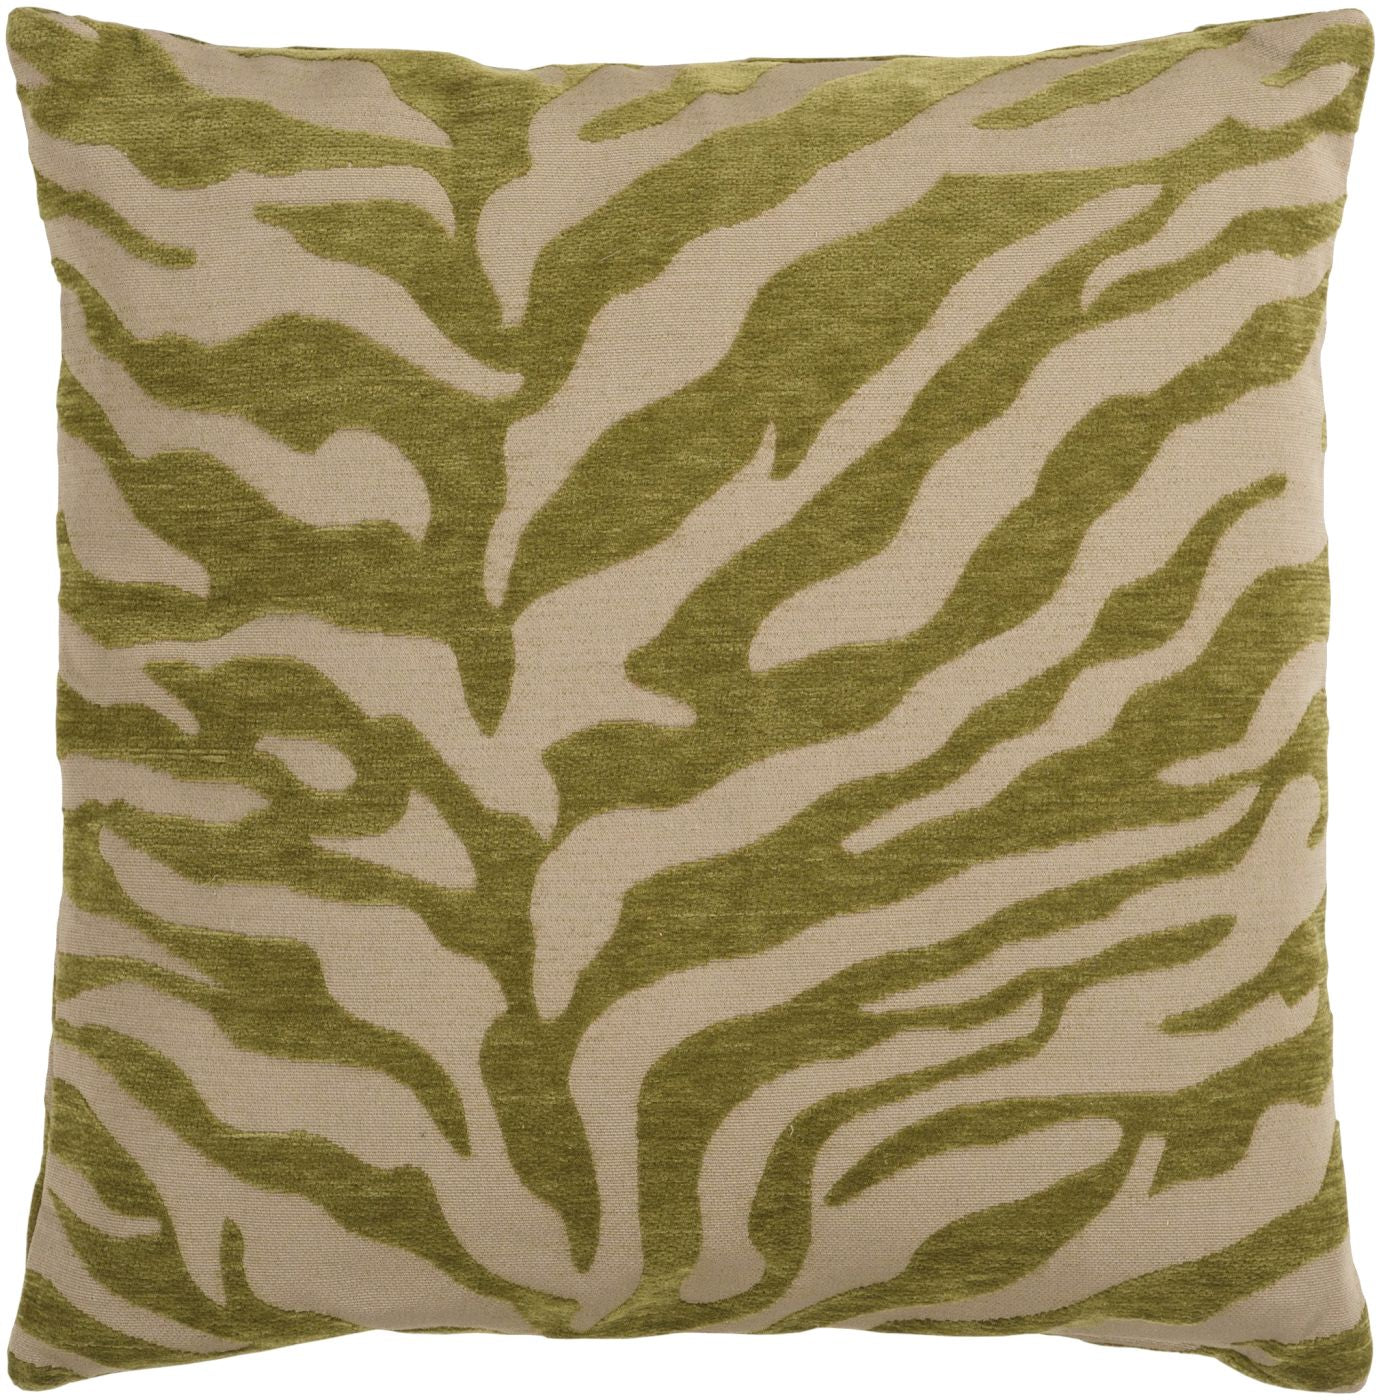 Miraculous Surya Blowout Sale Up To 70 Off Js029 2222D Velvet Zebra Throw Pillow Brown Green Only Only 66 00 At Contemporary Furniture Warehouse Uwap Interior Chair Design Uwaporg